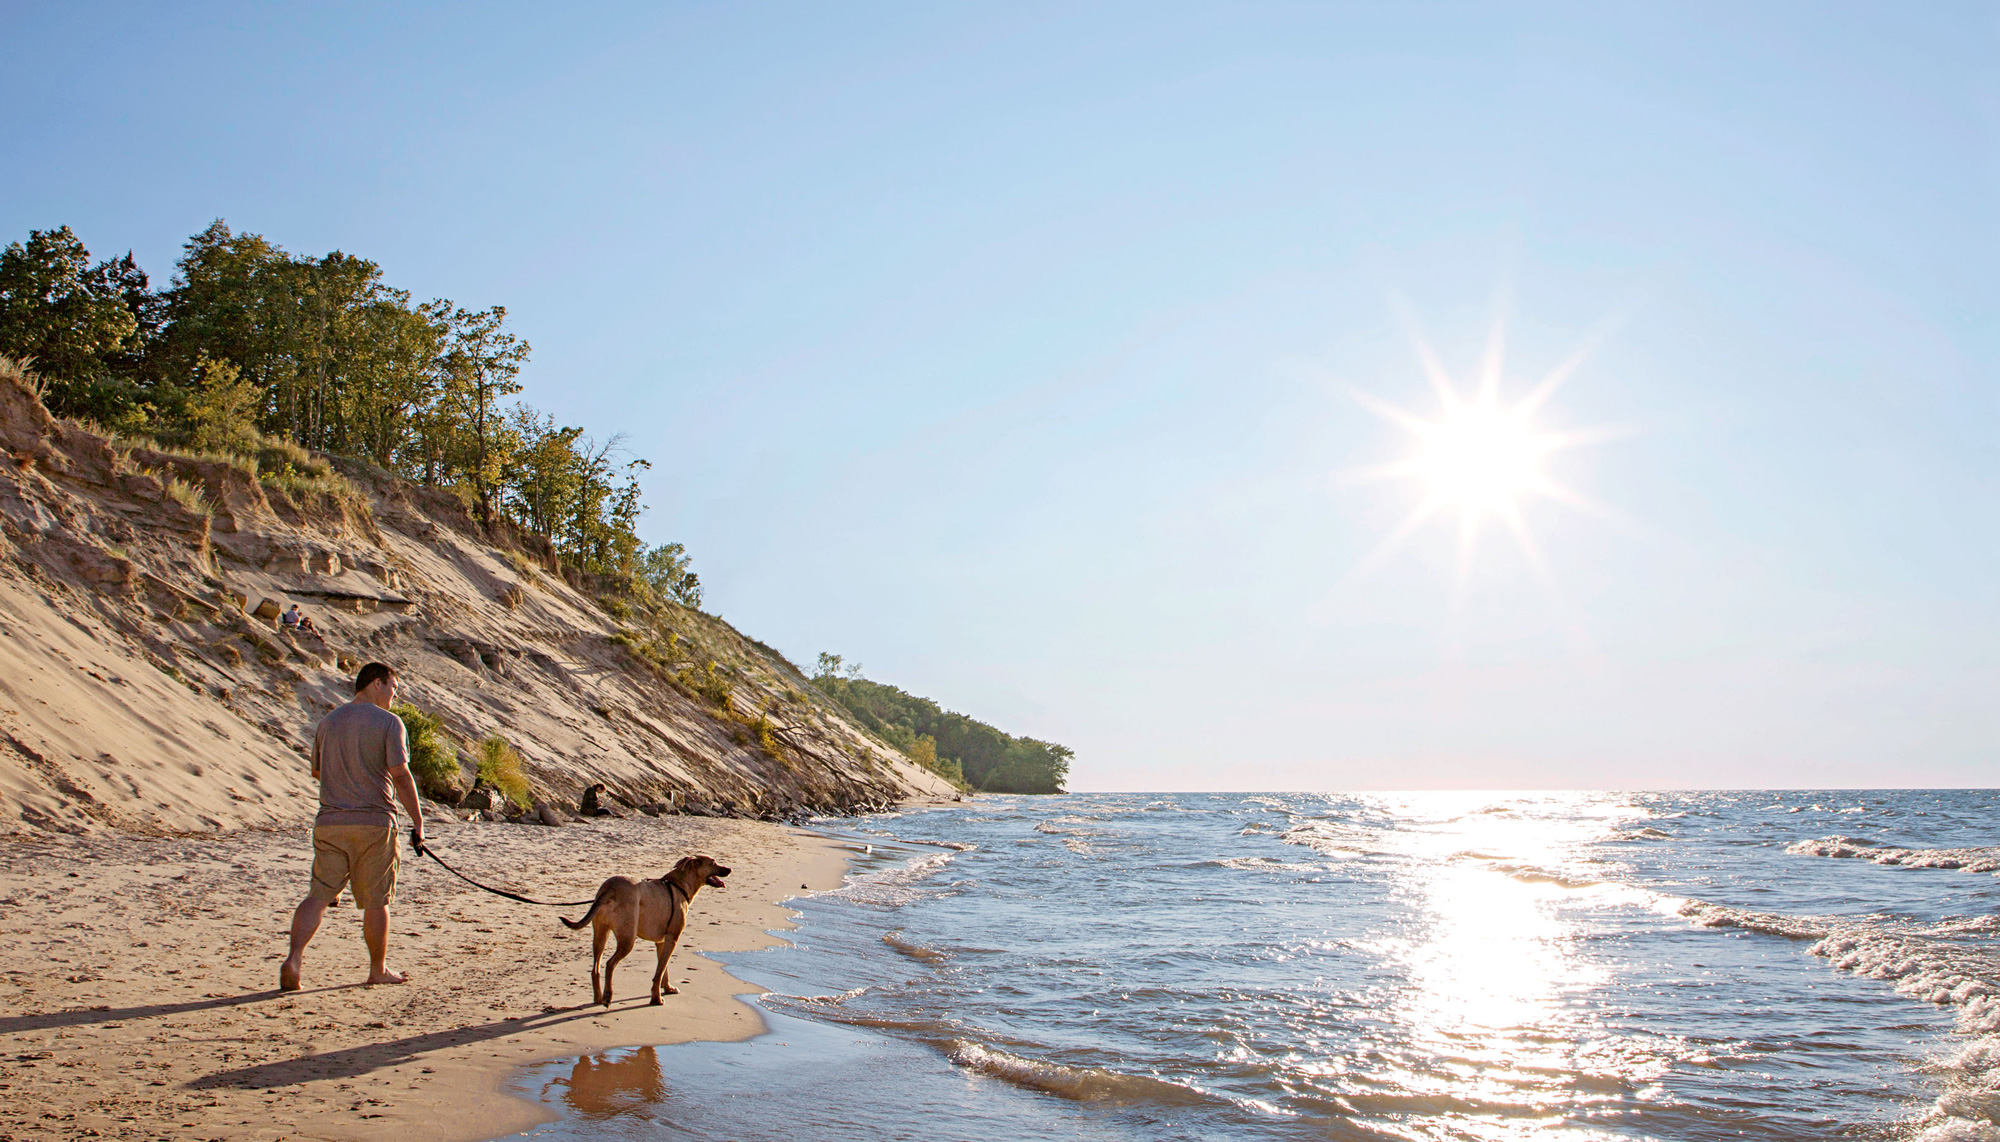 For A Less Vertical Feat Walk The Series Of Beaches Combined With Indiana Dunes State Park They Cover Nearly 25 Miles Nps Gov Indu In Dnr